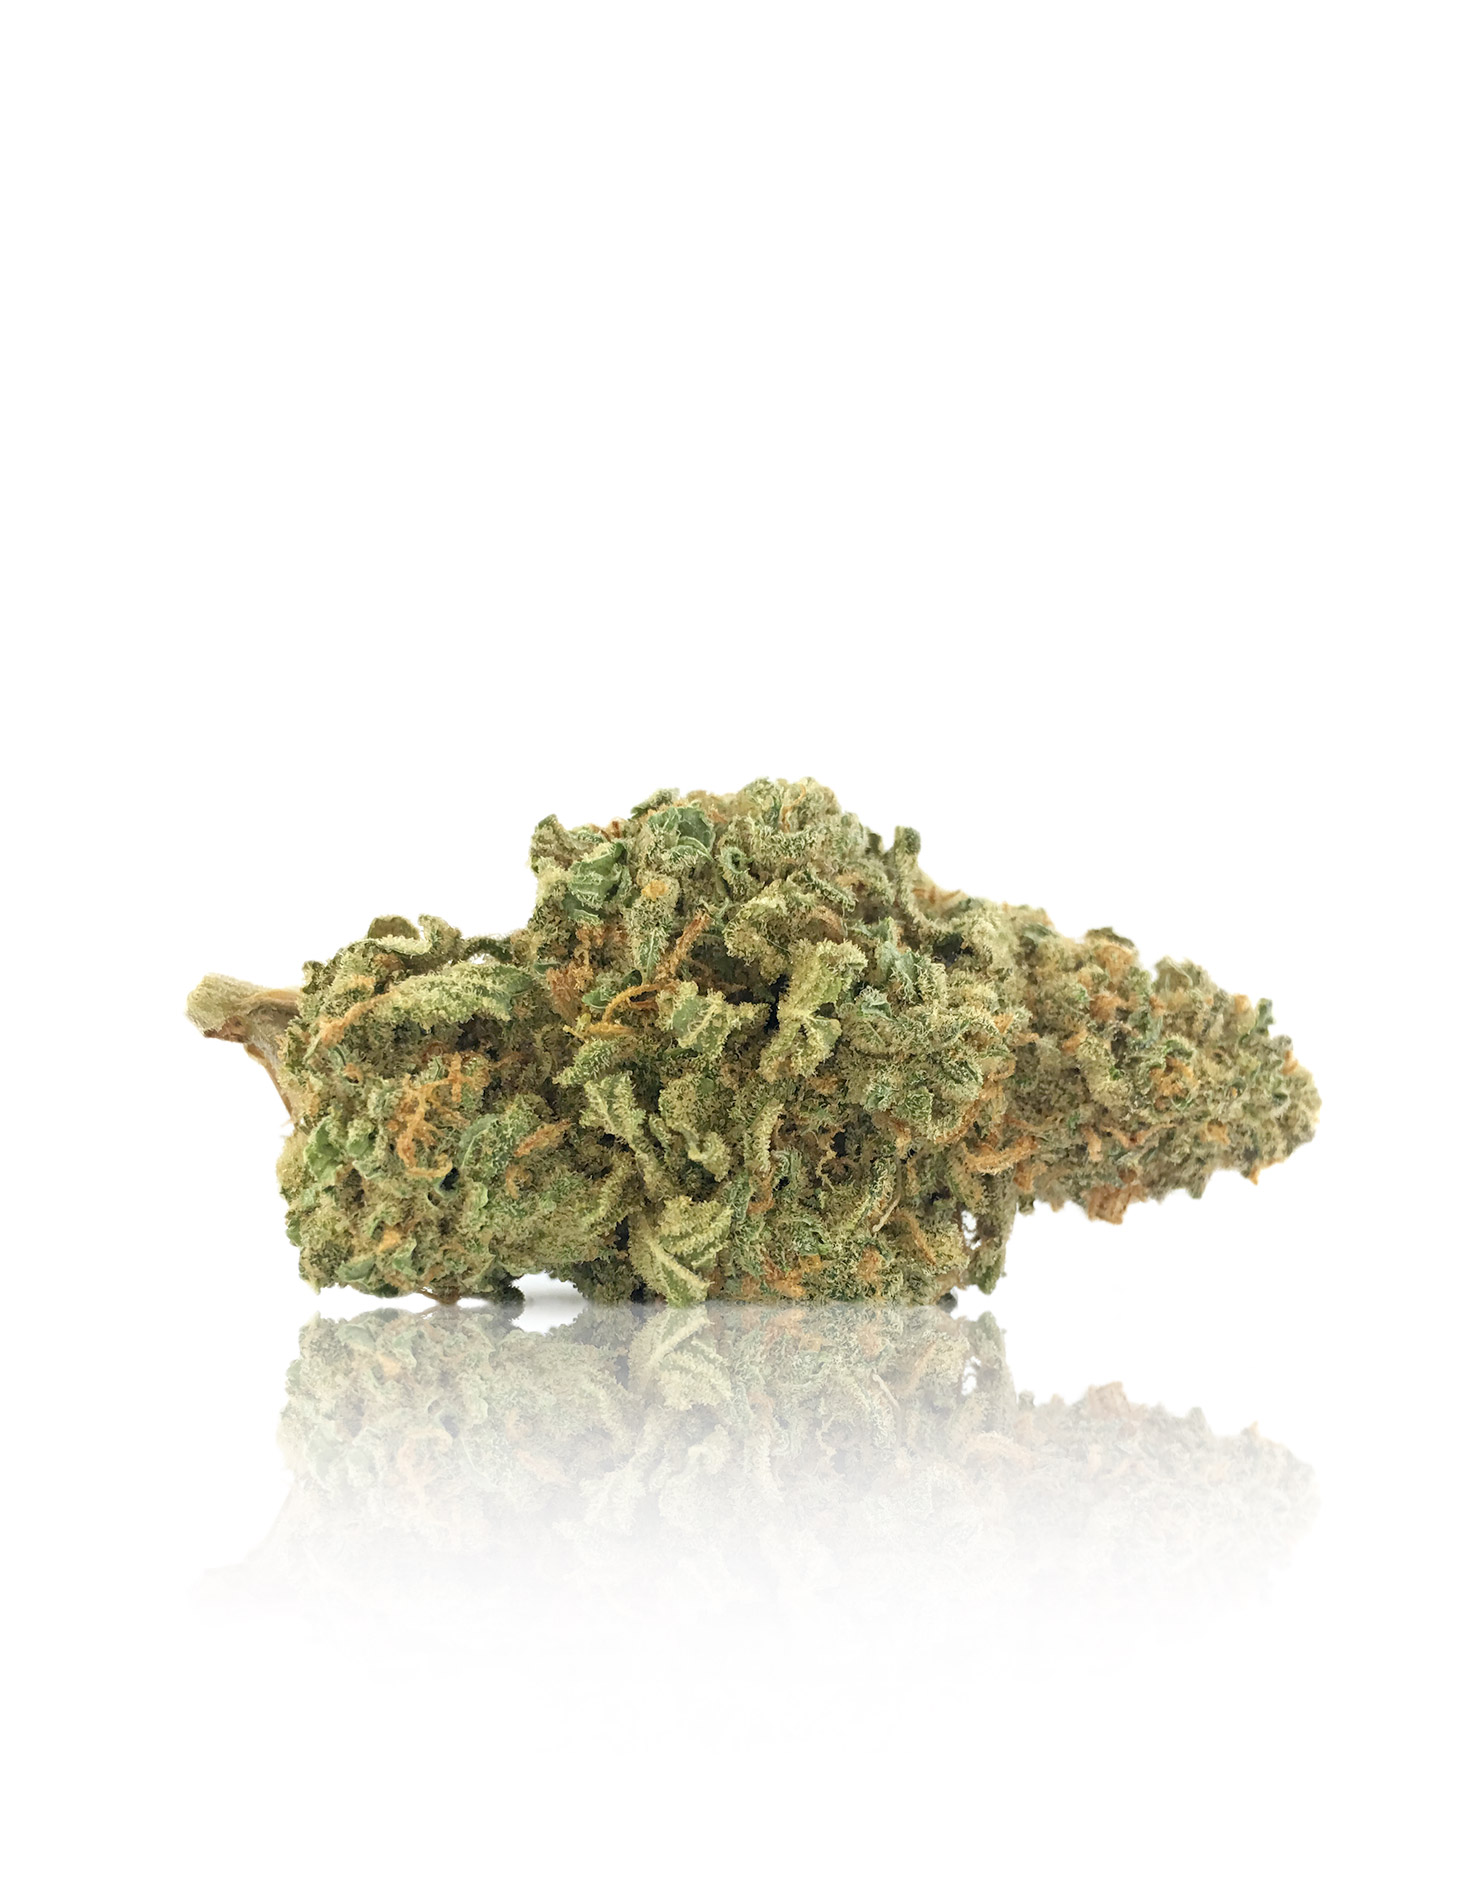 (AAA) God Bud by Ganja Grams - Image © 2018 Ganja Grams. All Rights Reserved.